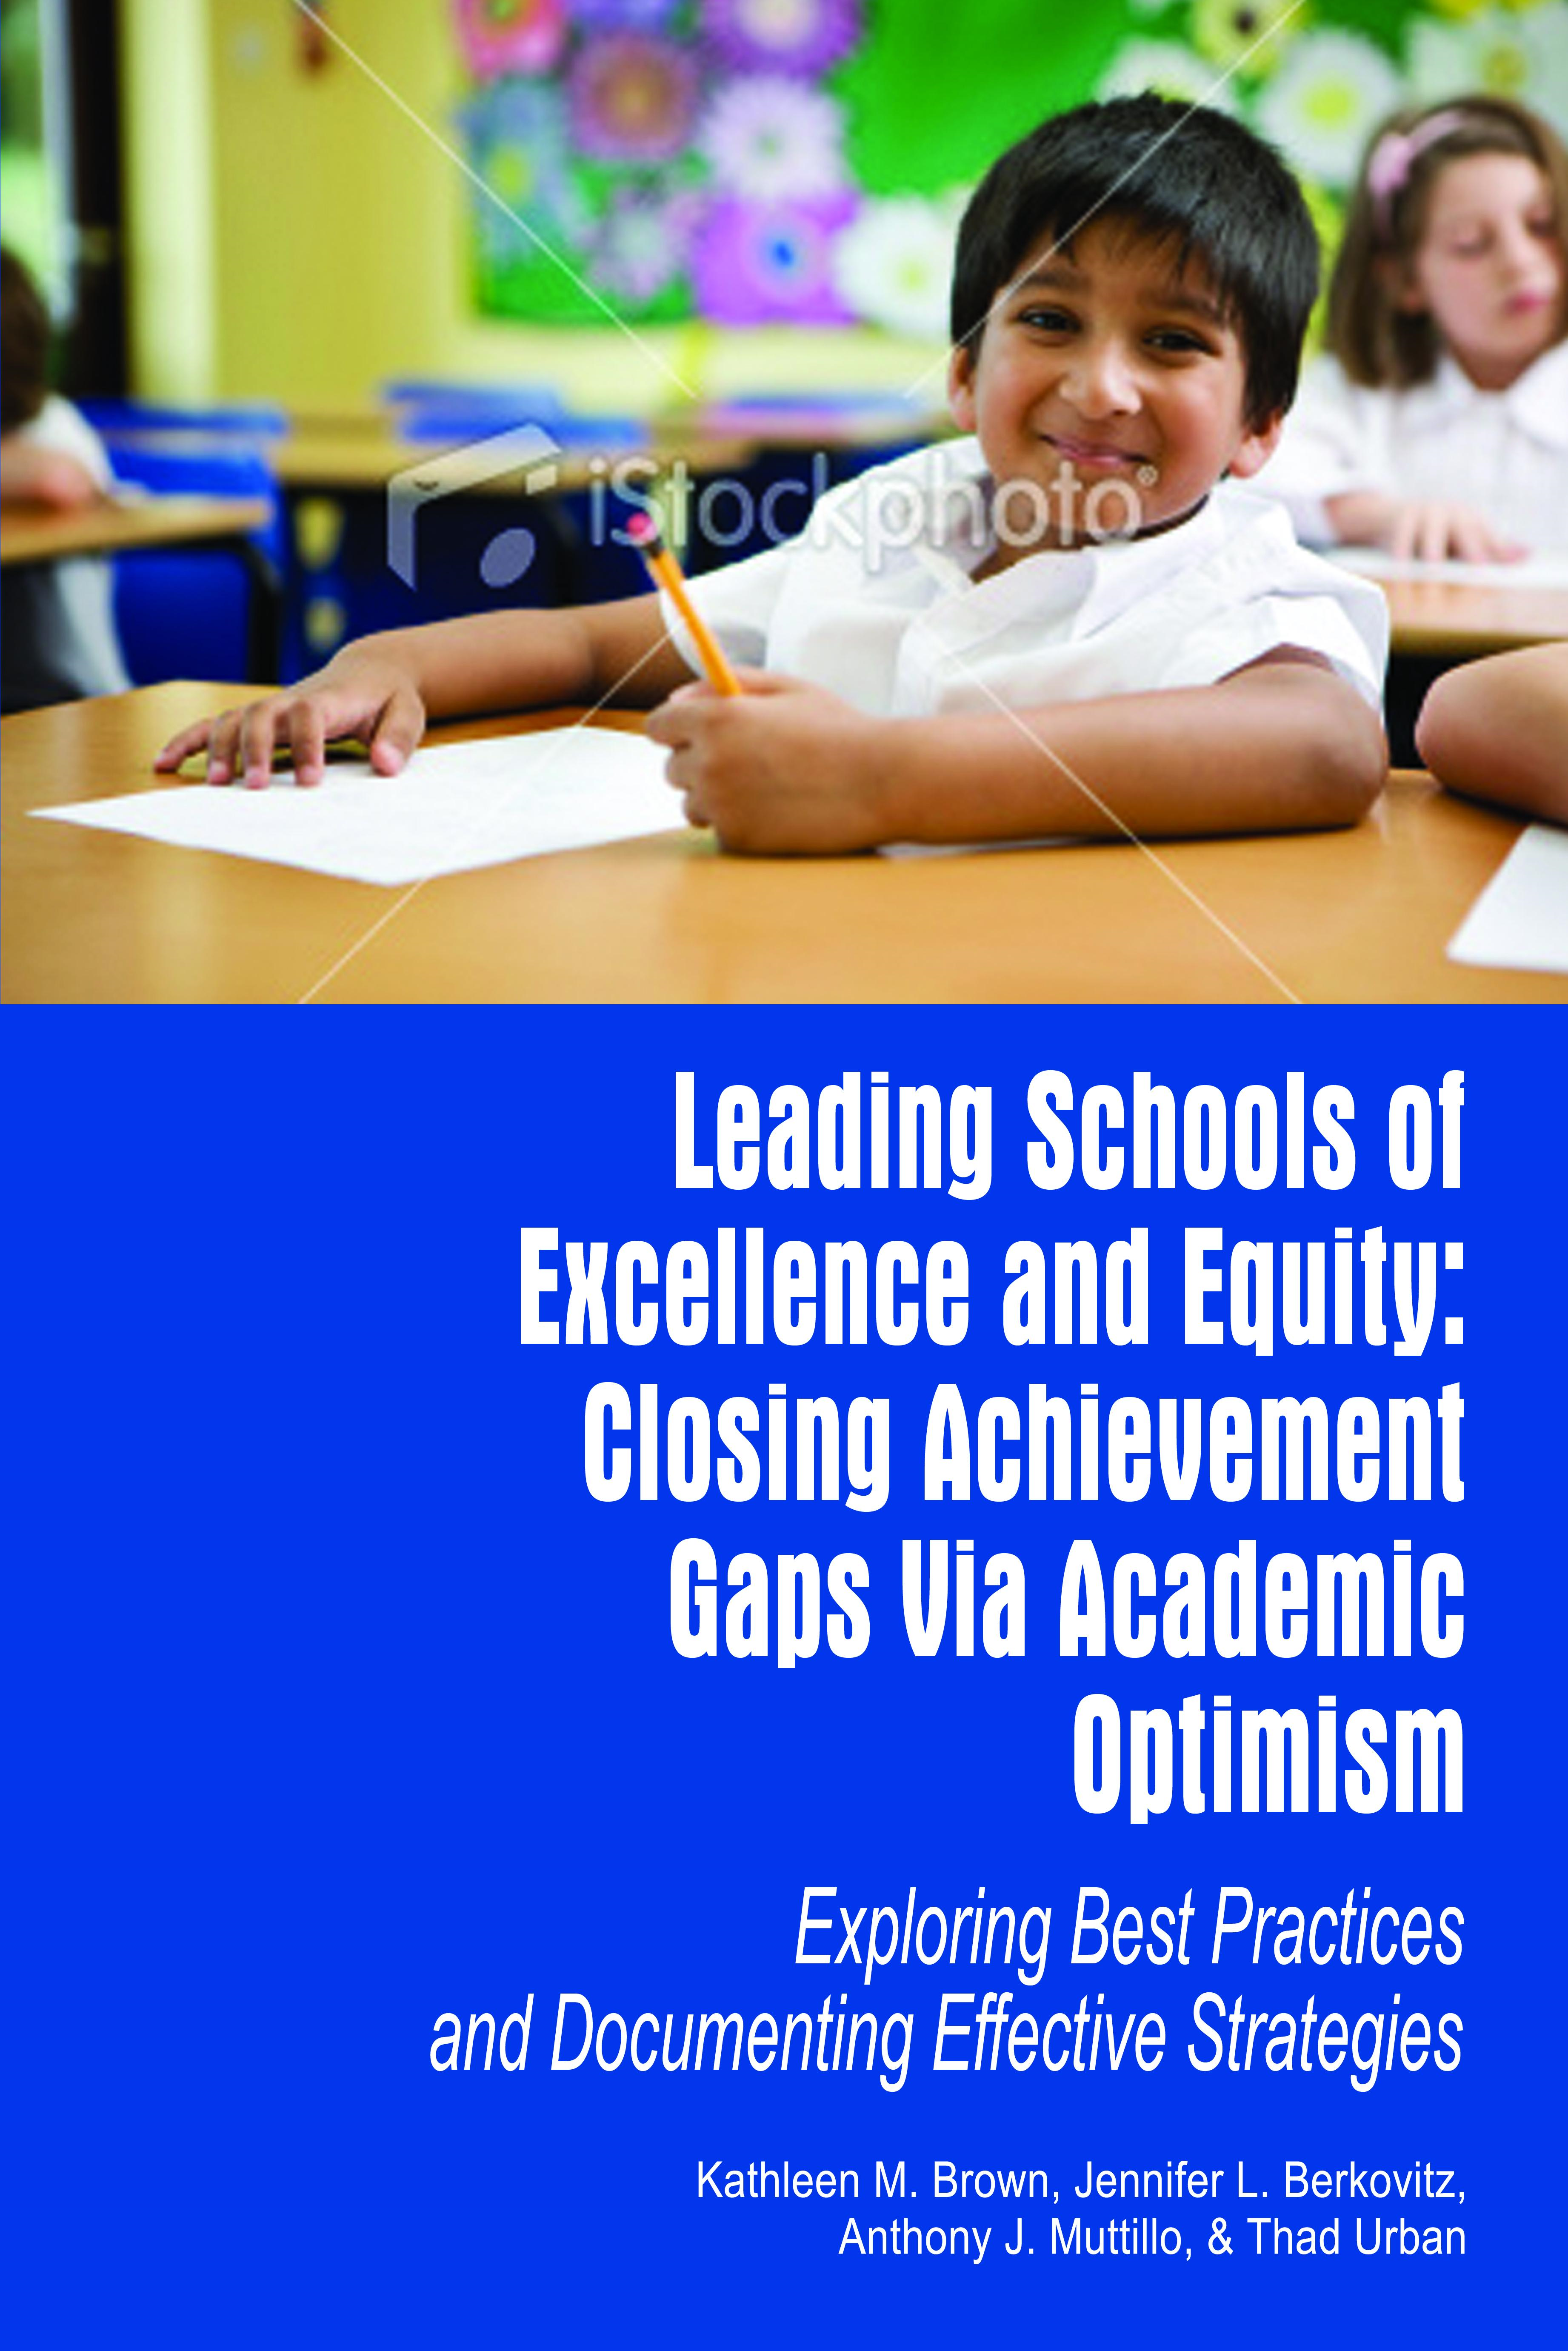 Leading Schools of Excellence and Equity: Closing Achievement Gaps Via Academic Optimism Exploring Best Practices and Documenting Effective Strategies